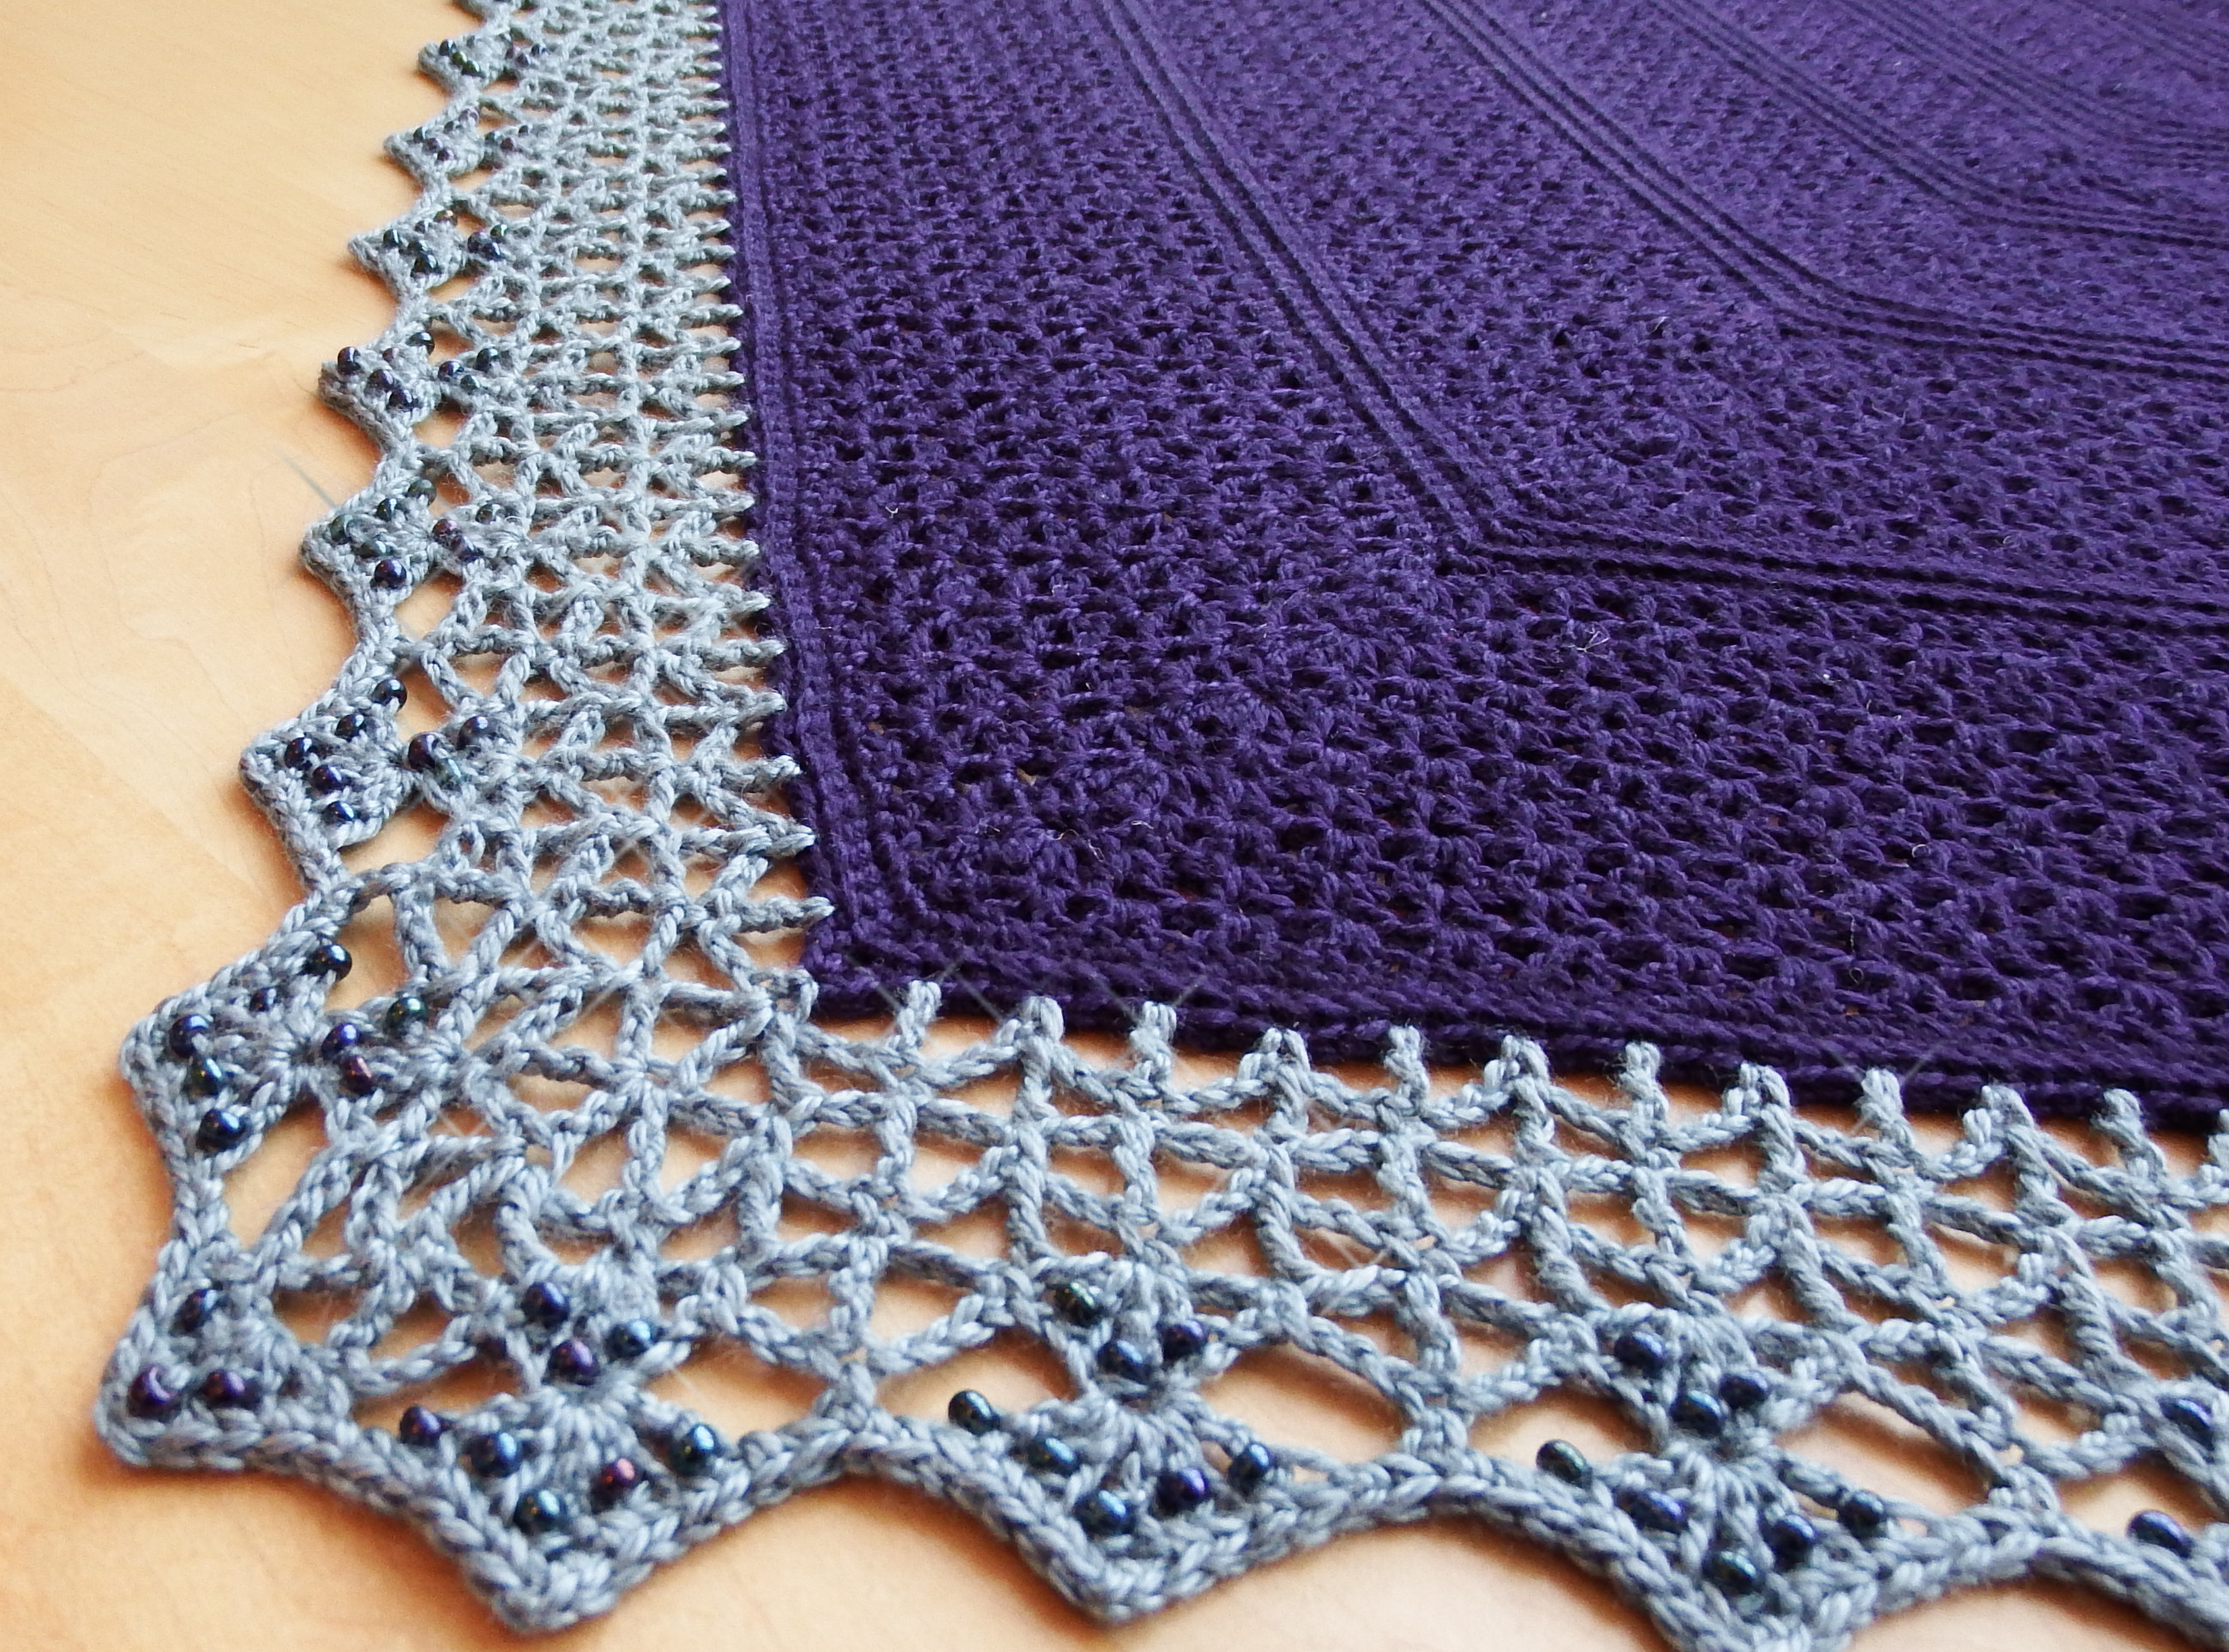 Inspirational Free Crochet Edging Patterns for Shawls Crochet Lace Edging Pattern Of Amazing 40 Photos Crochet Lace Edging Pattern